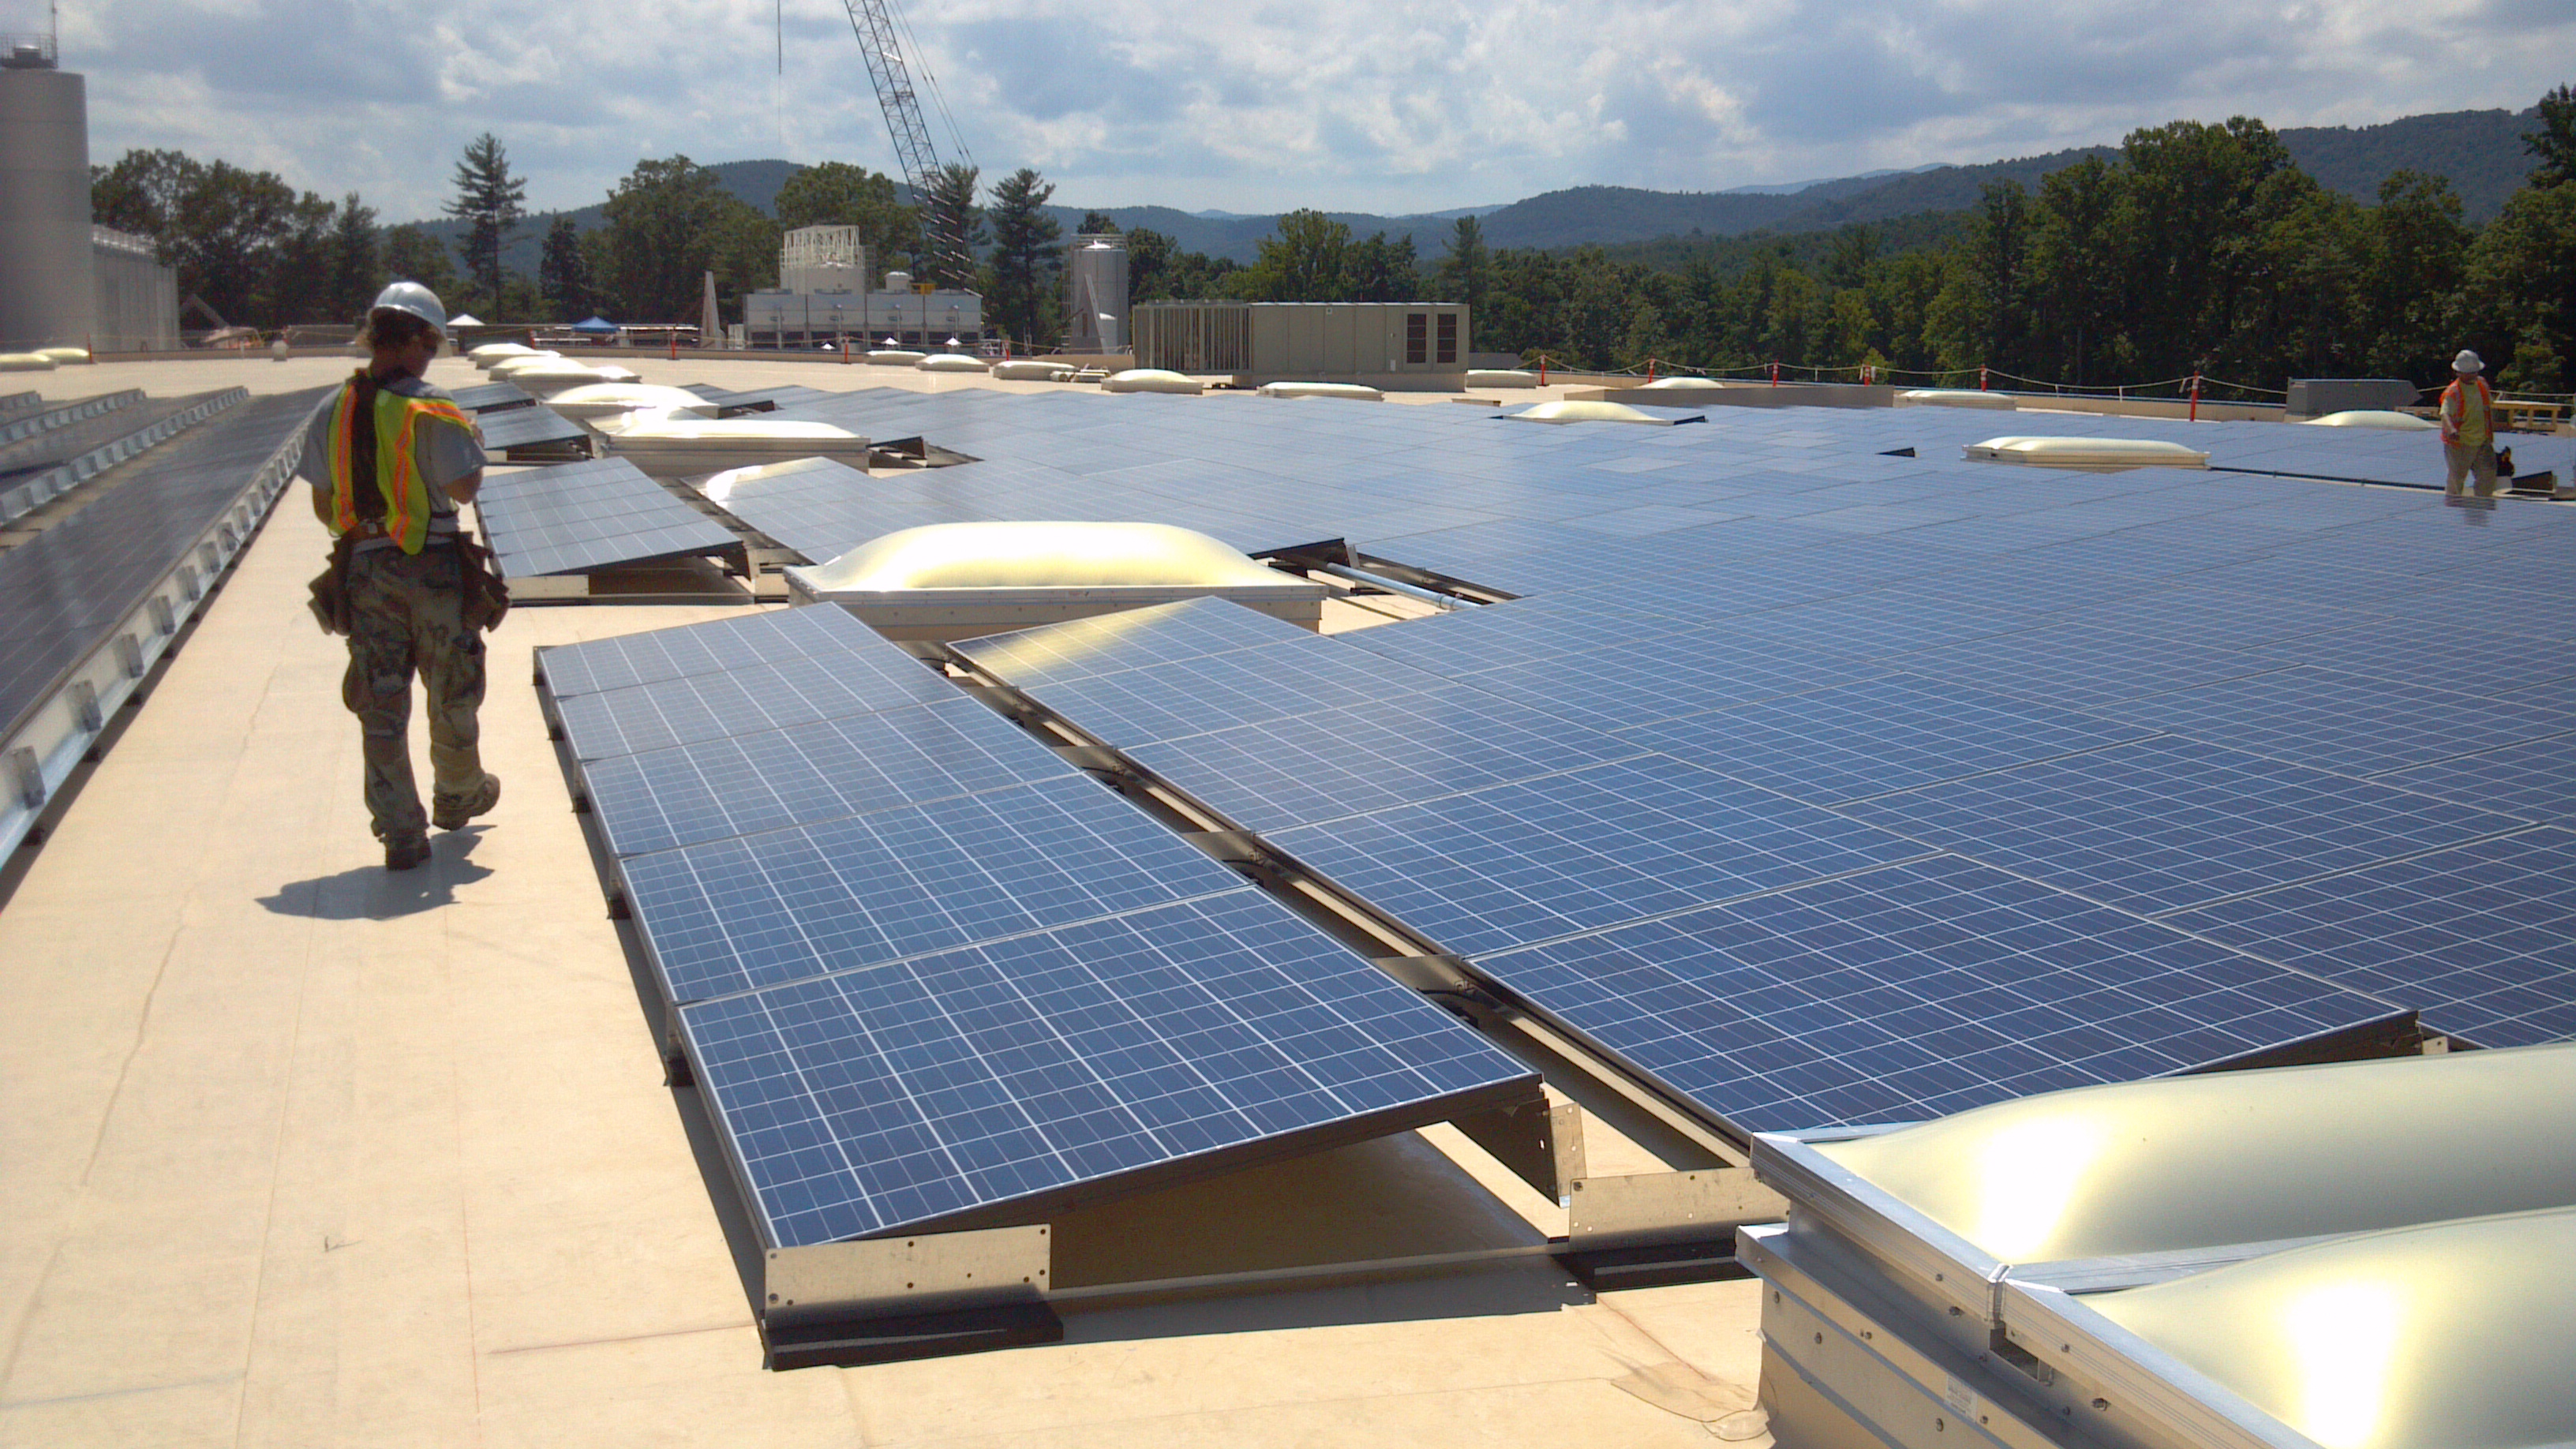 Companies Urge Duke Energy For Public Support Of Solar